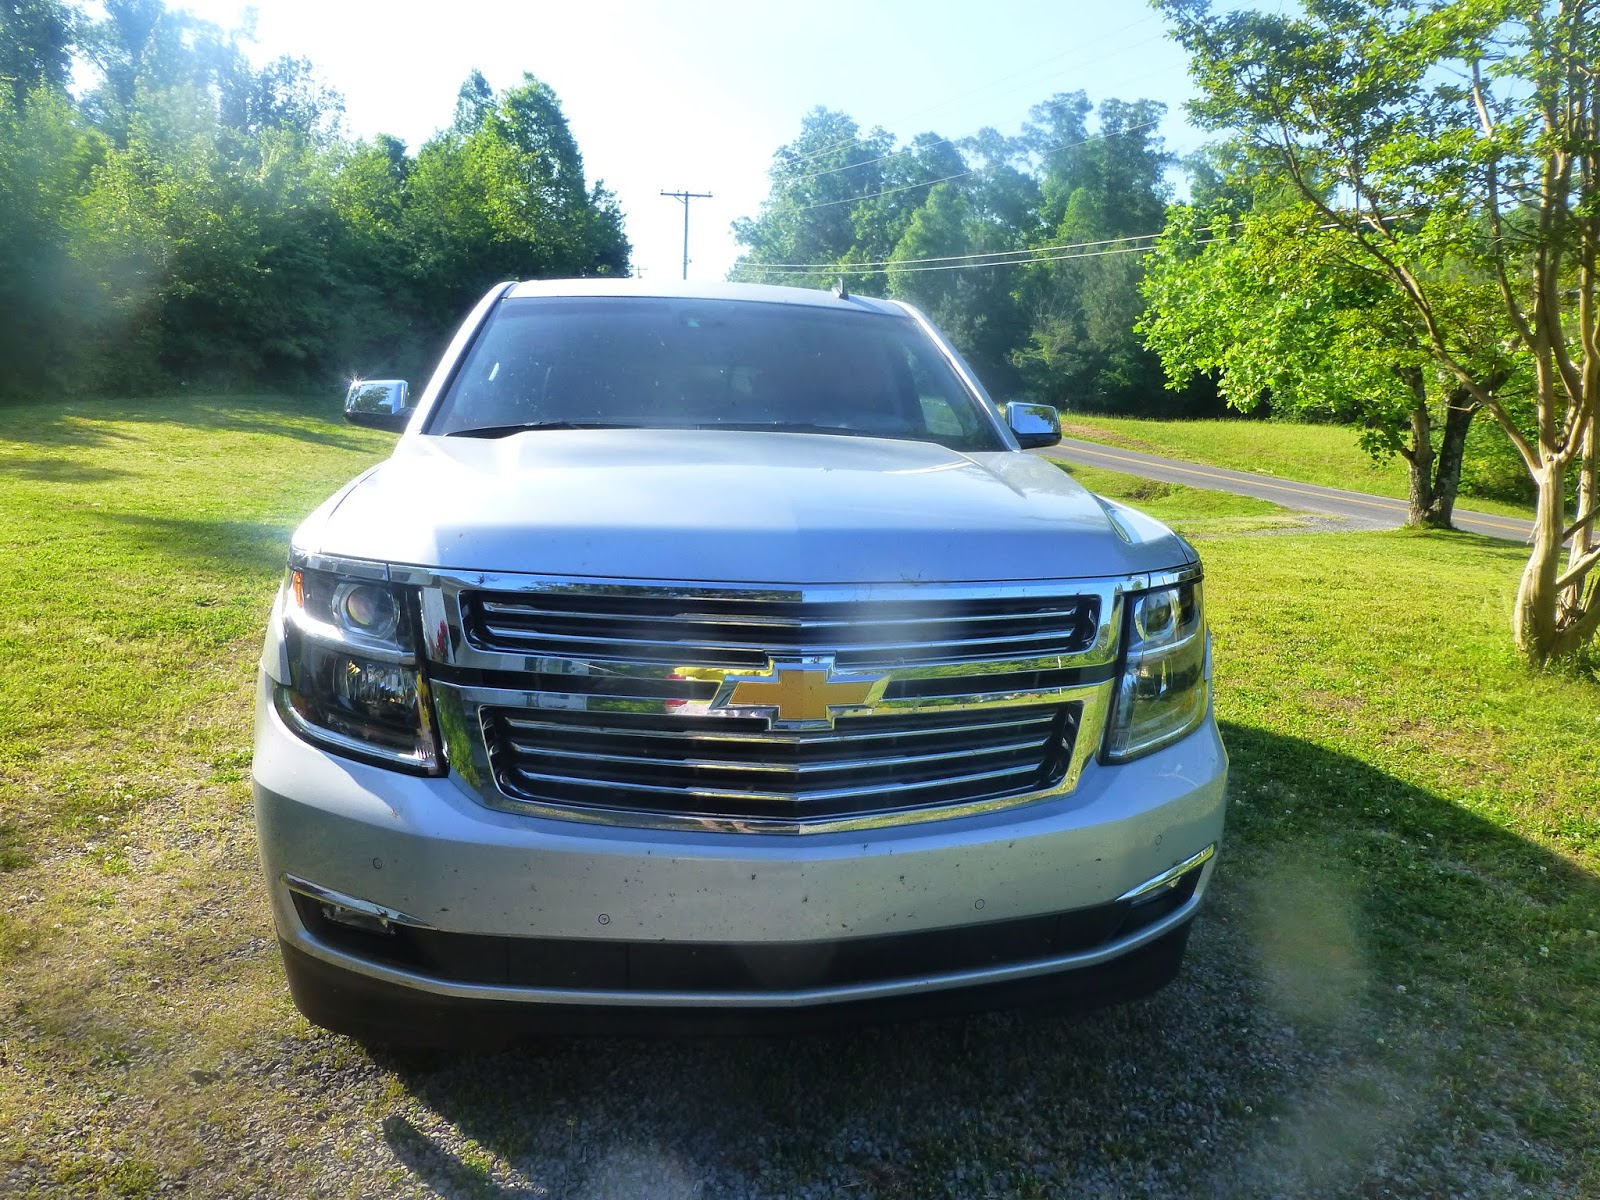 The 2015 Chevrolet Tahoe Ltz Our Whiskey Lullaby Chevy Last Week Family Was Able To Drive Around In Style New Say This An Ordinary Suv Would Be A Complete Lie